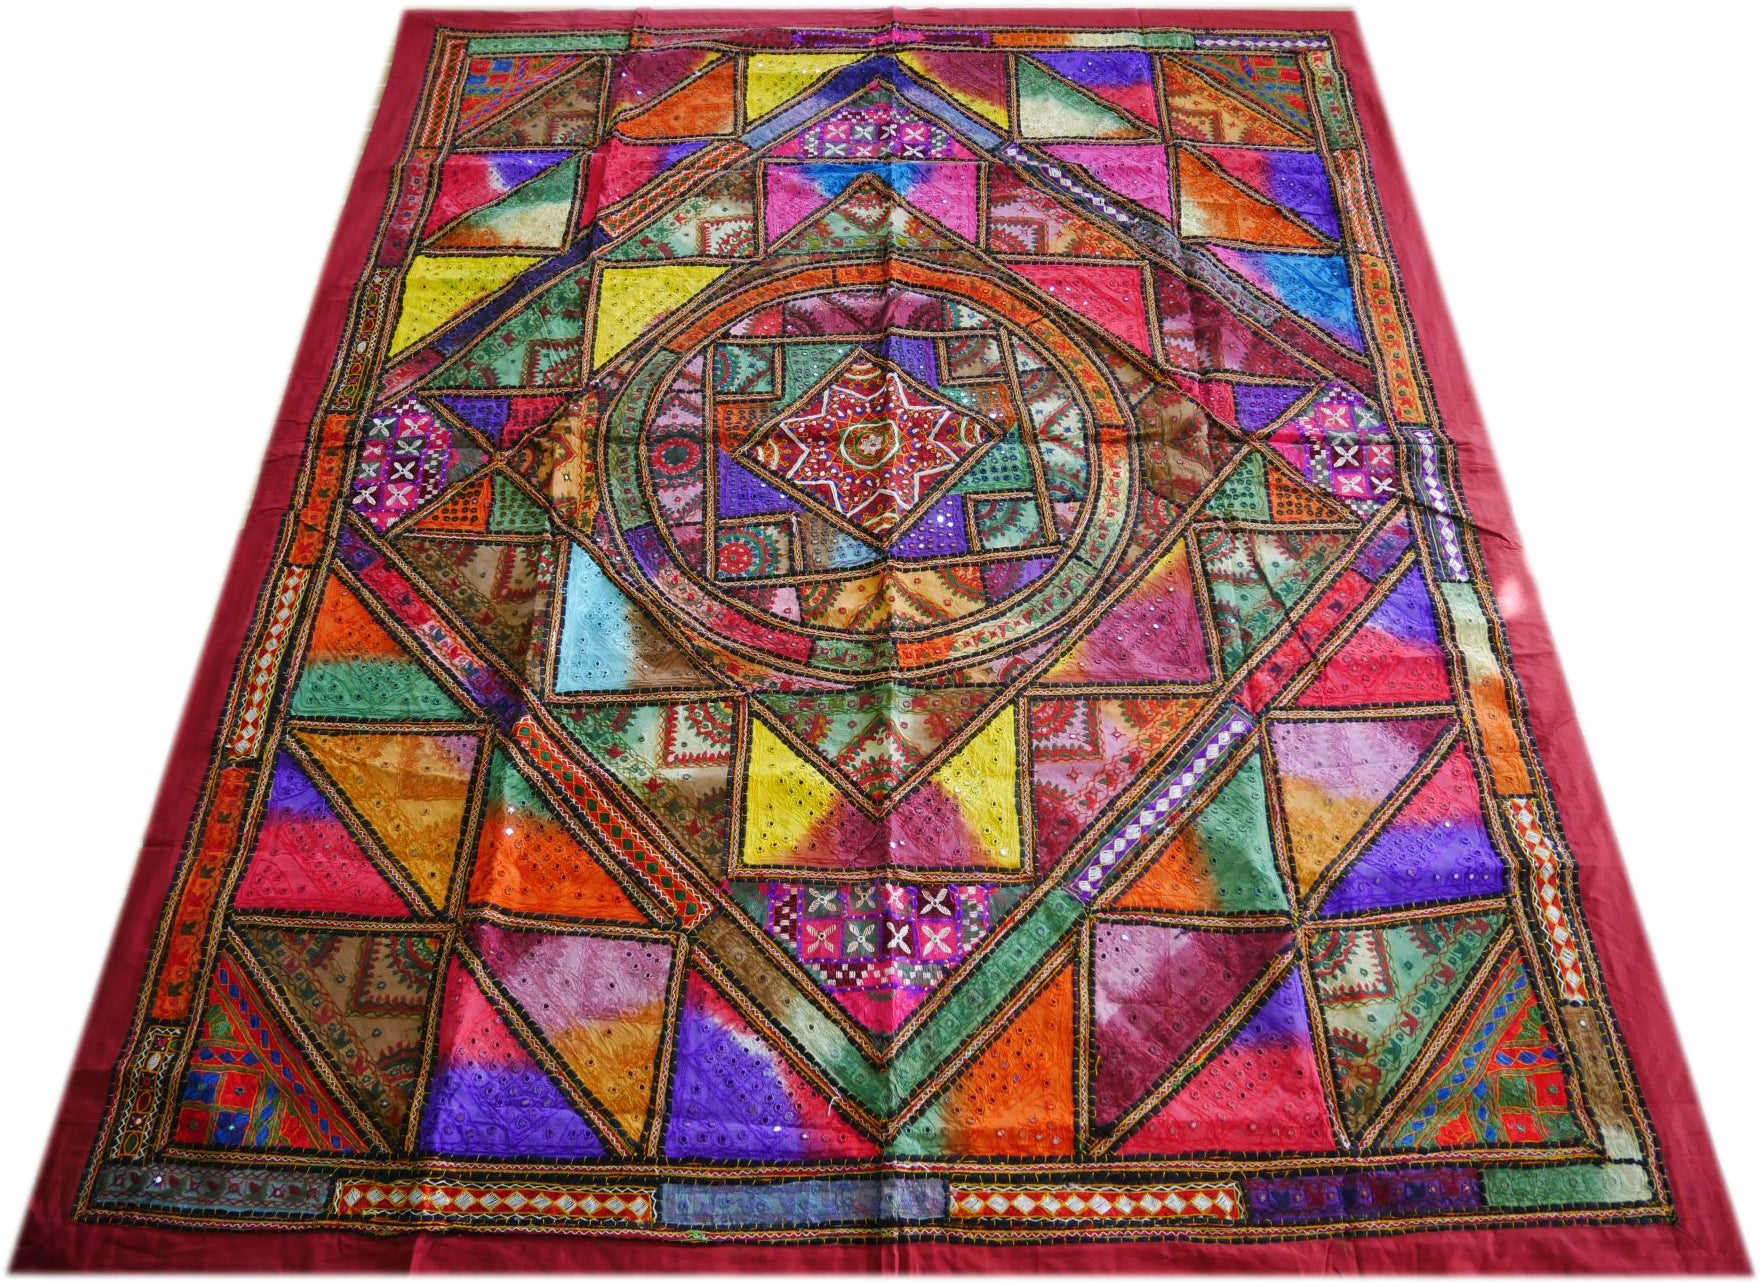 """Boho Geometry"" - hand embroidered colorful patchwork quilt - Indian luxury bedding"